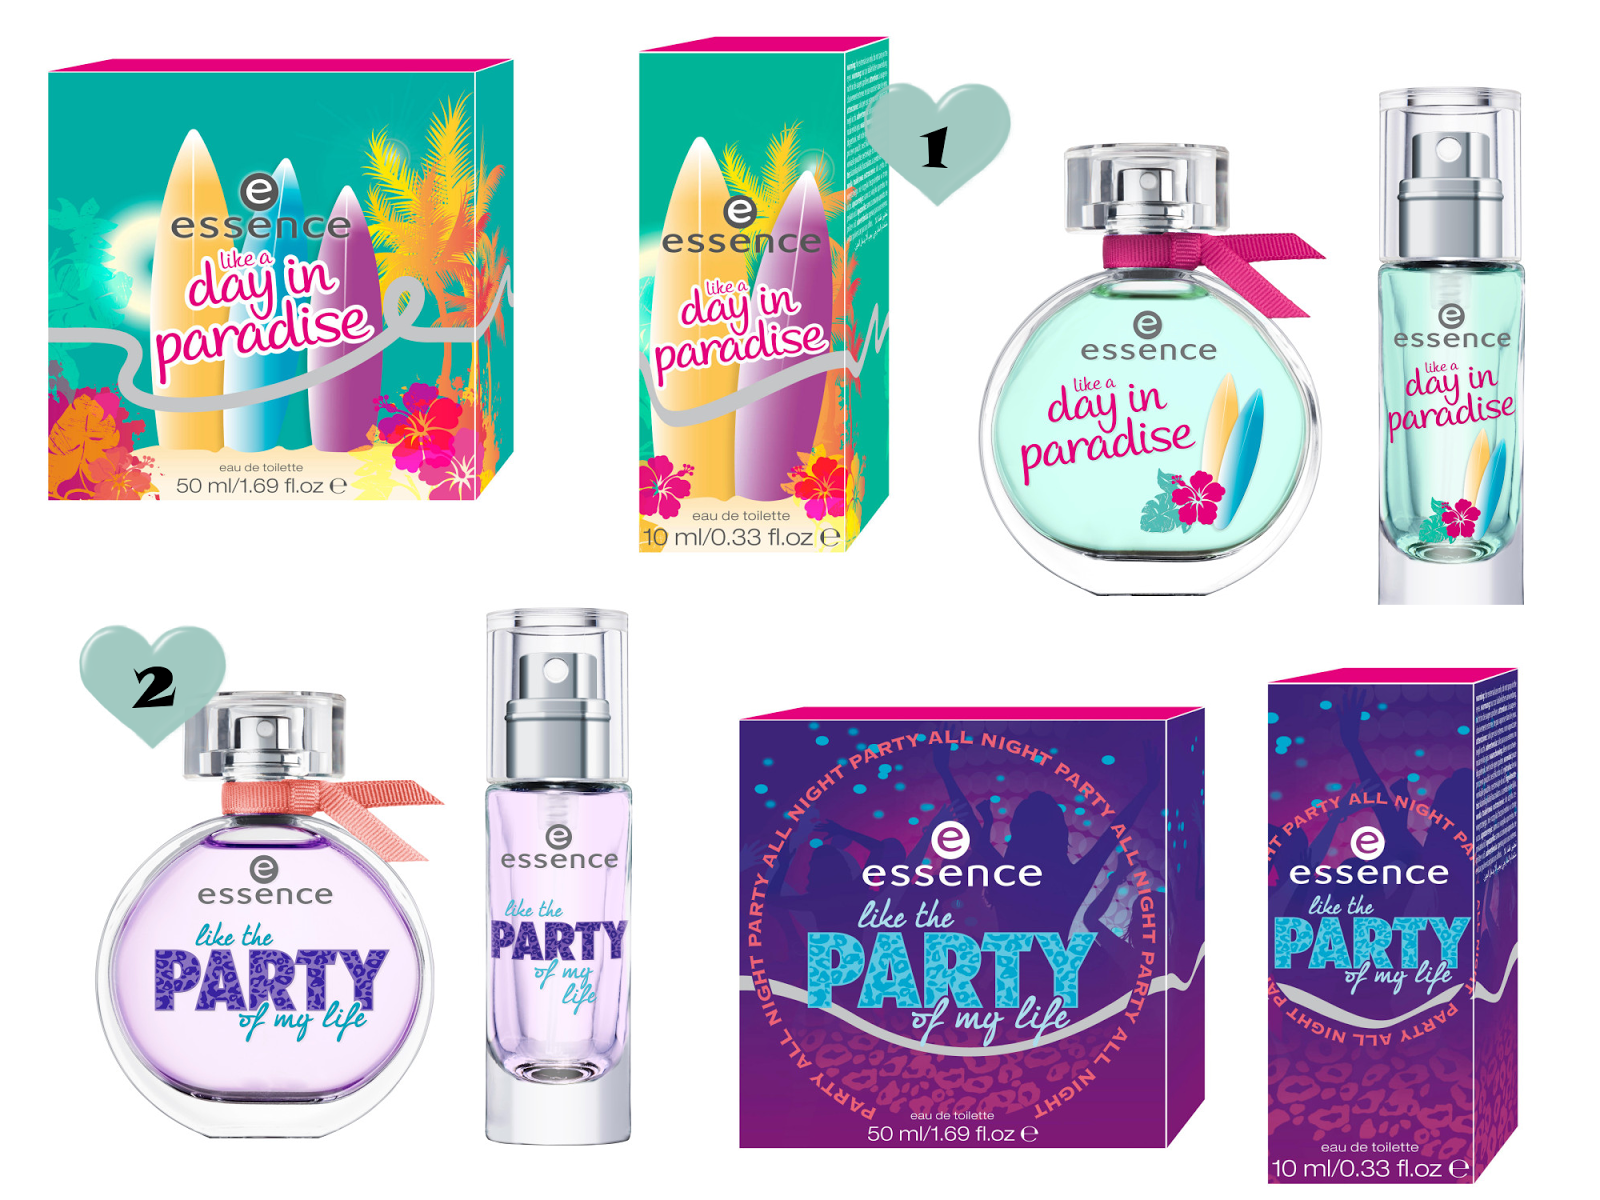 essence New Fragrances September 2013